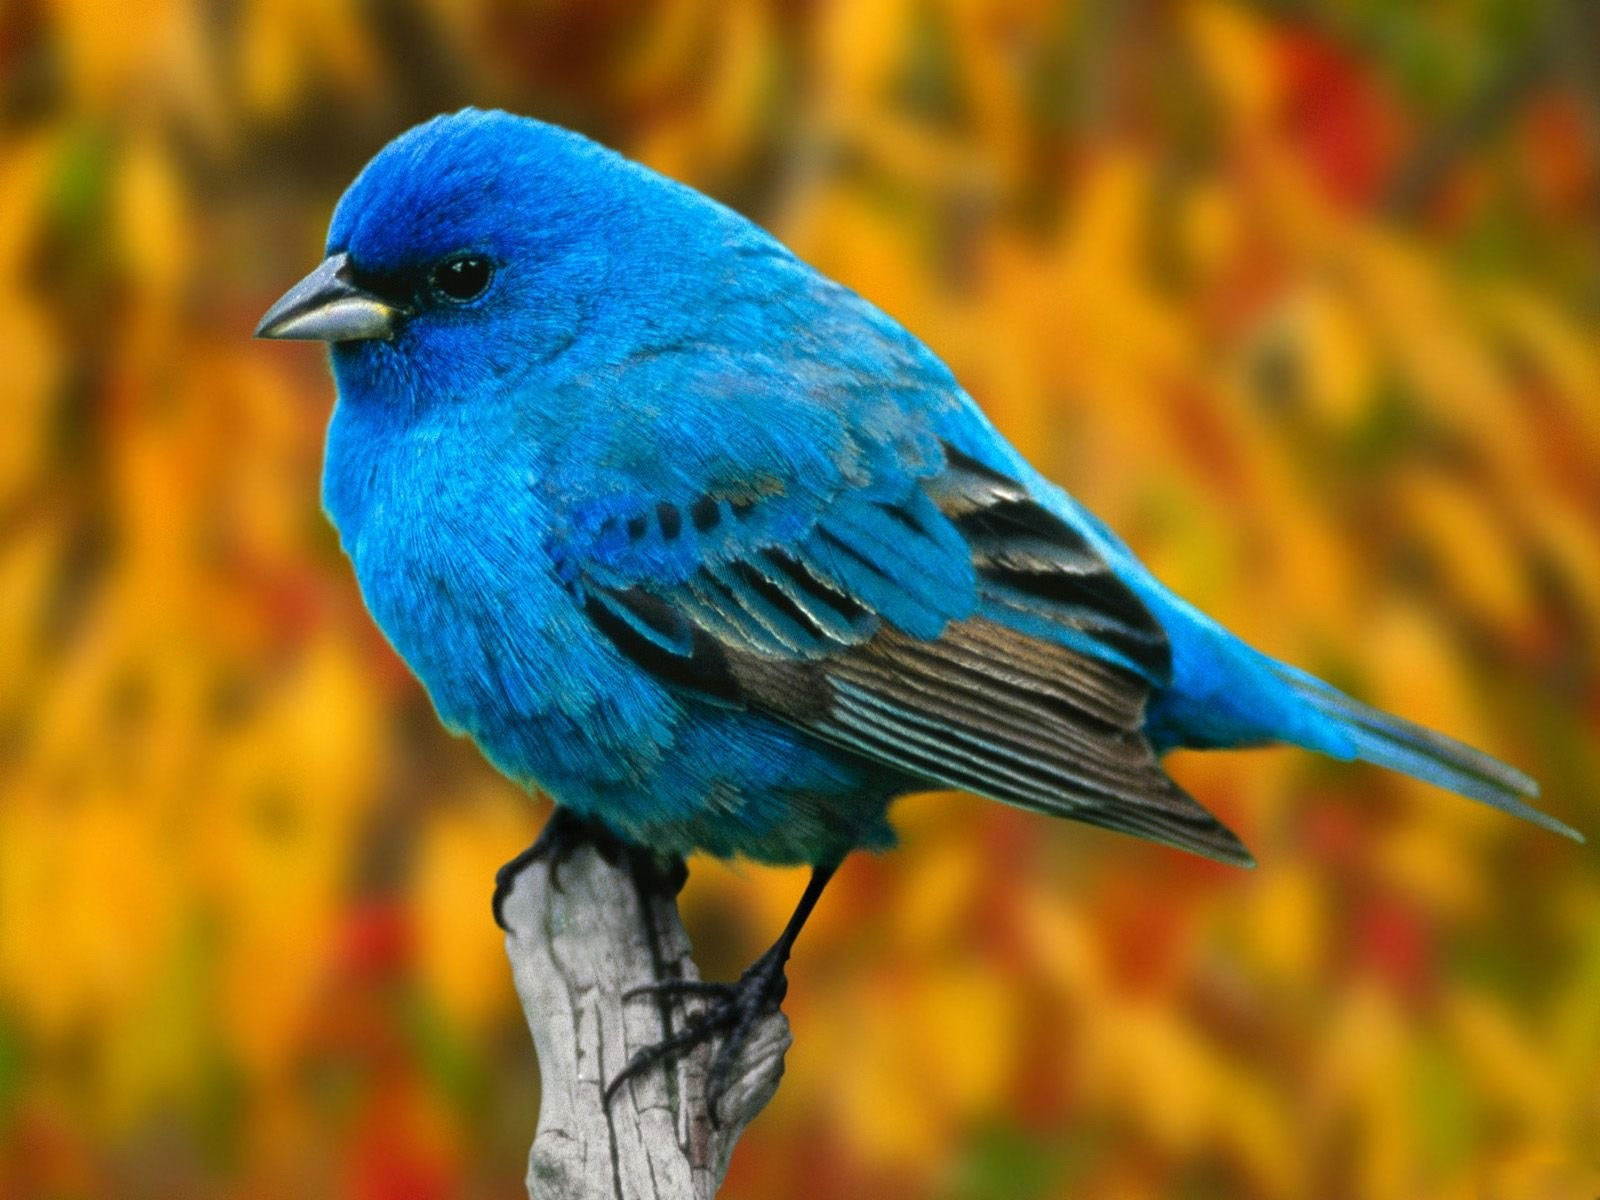 HD WALLPAPERS: ColorfulBirds Desktop wallpapers